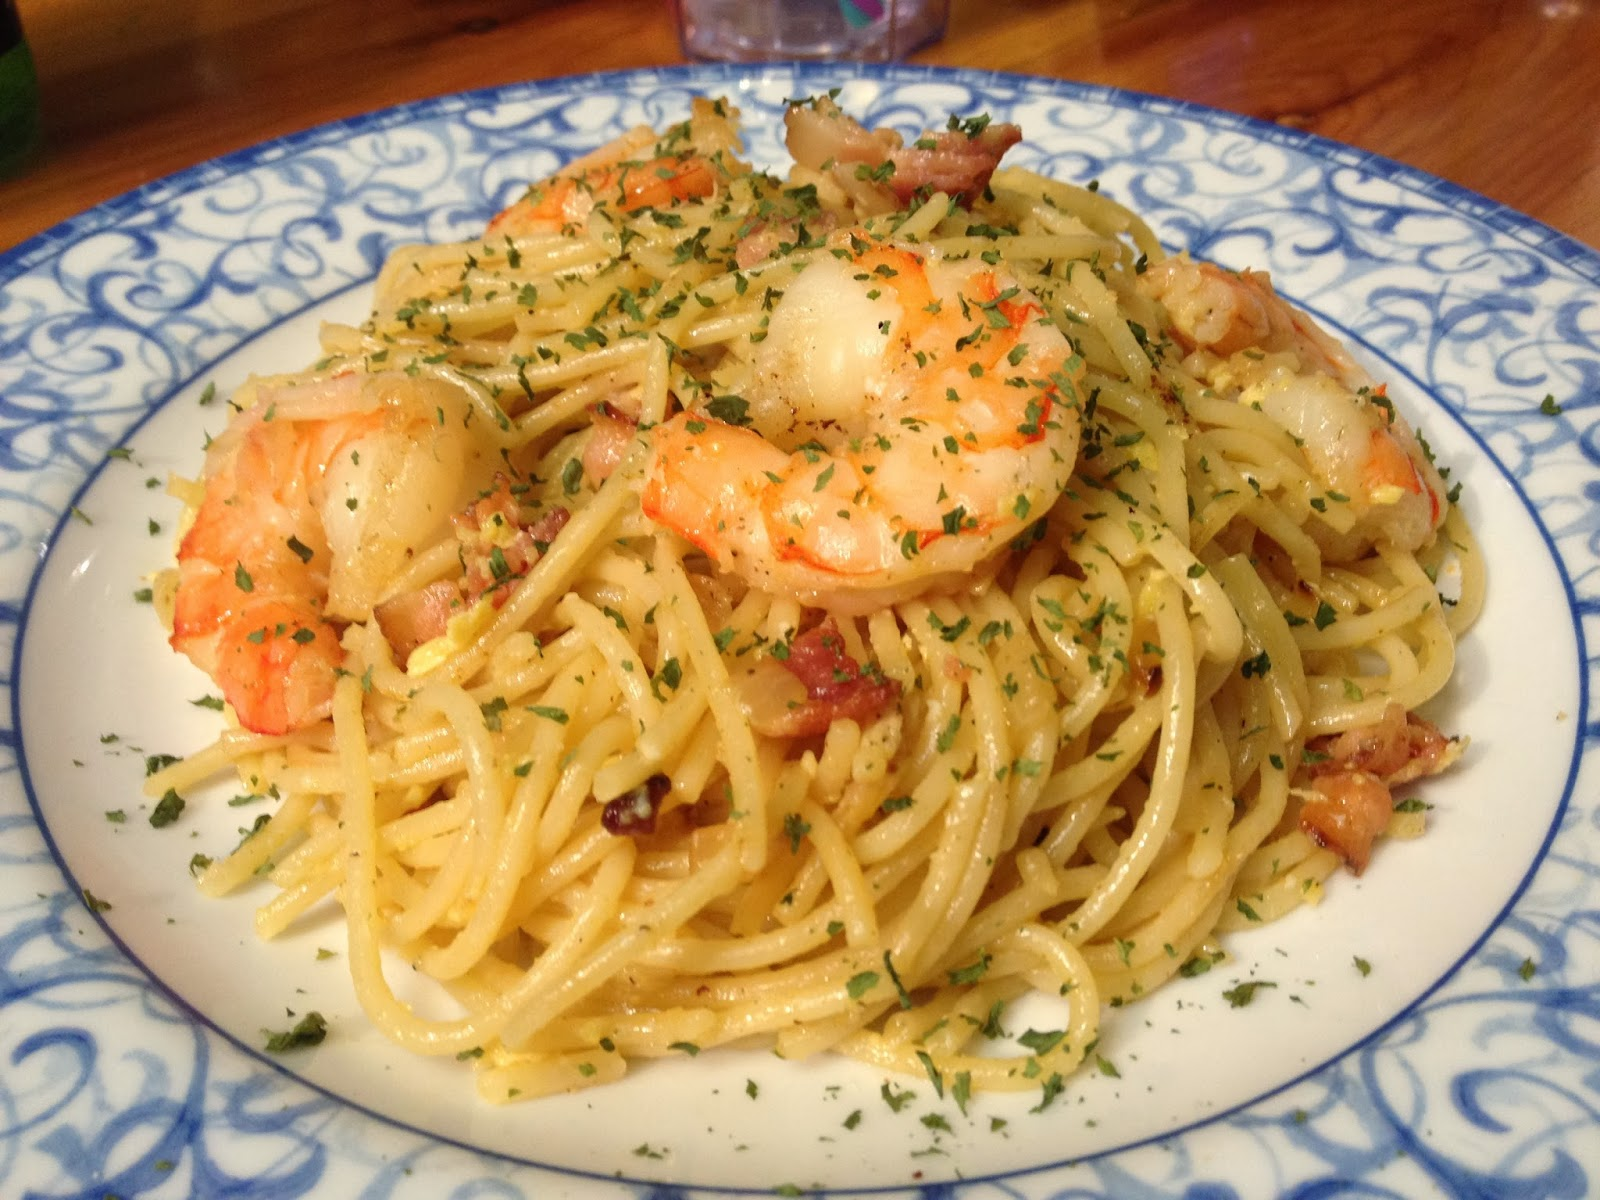 My Food Infatuation: Shrimp and Bacon Carbonara